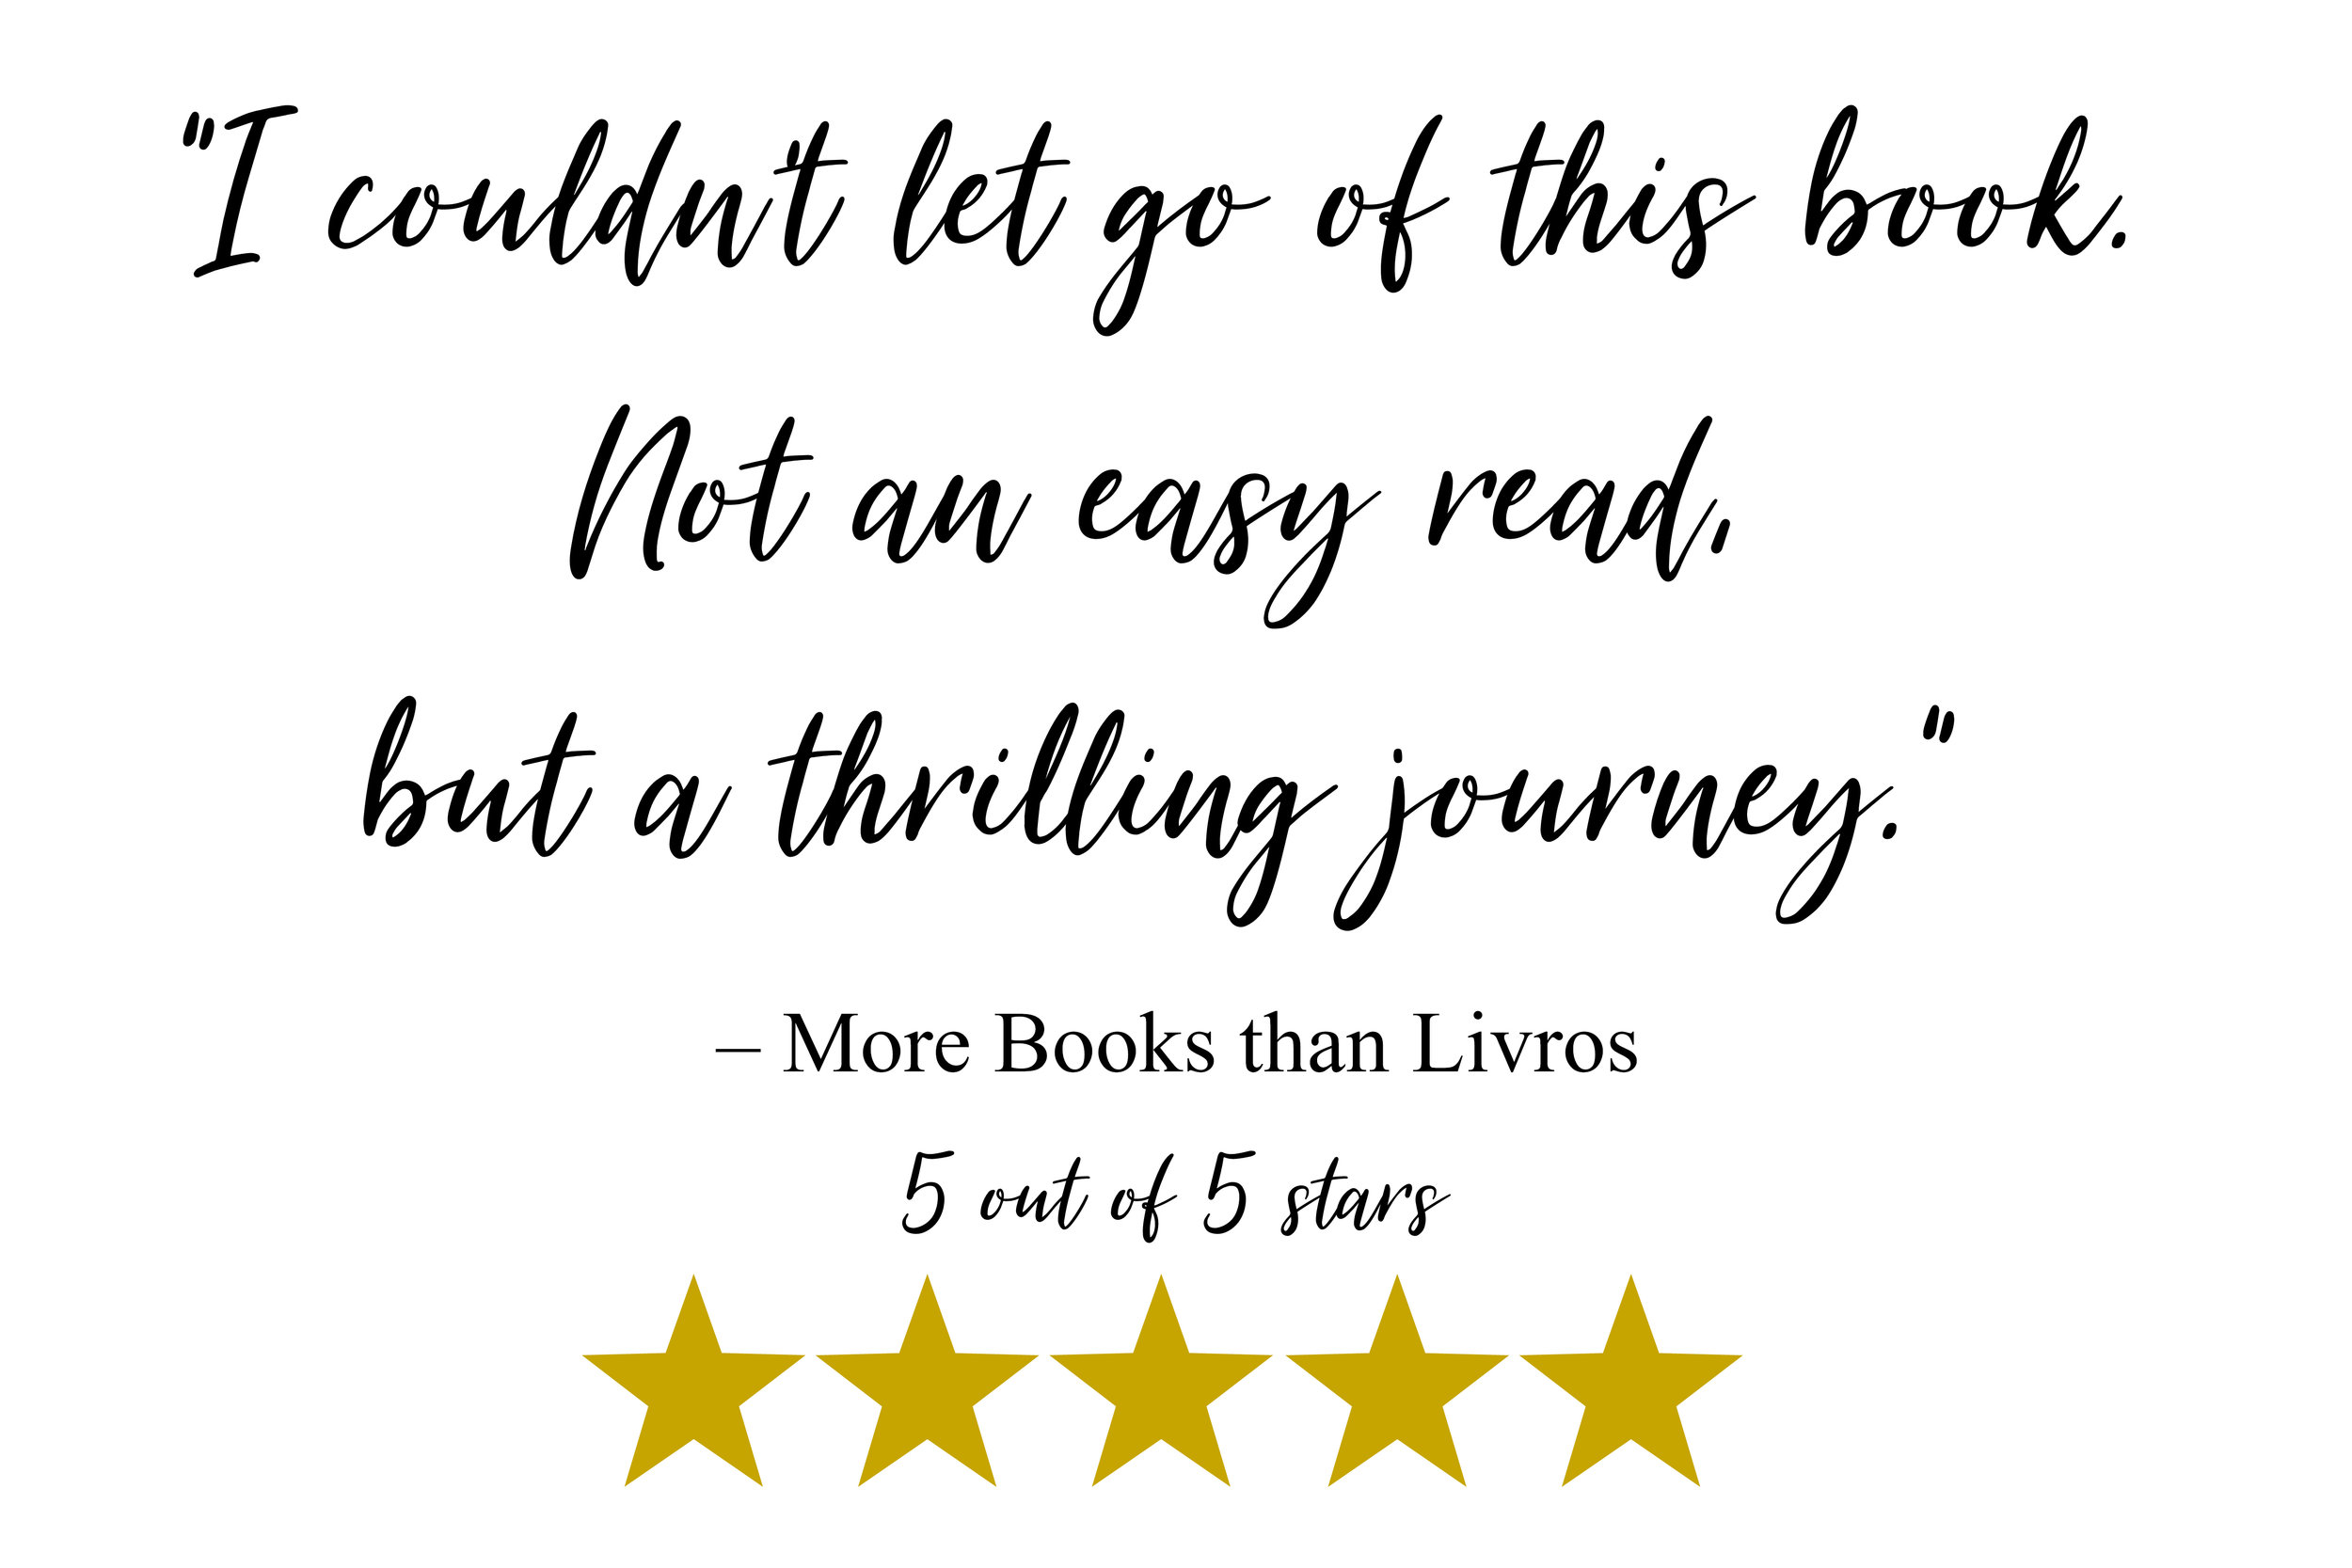 """I couldn't let go of this book. Not an easy read, but a thrilling journey."" - More Books than Livros Review"